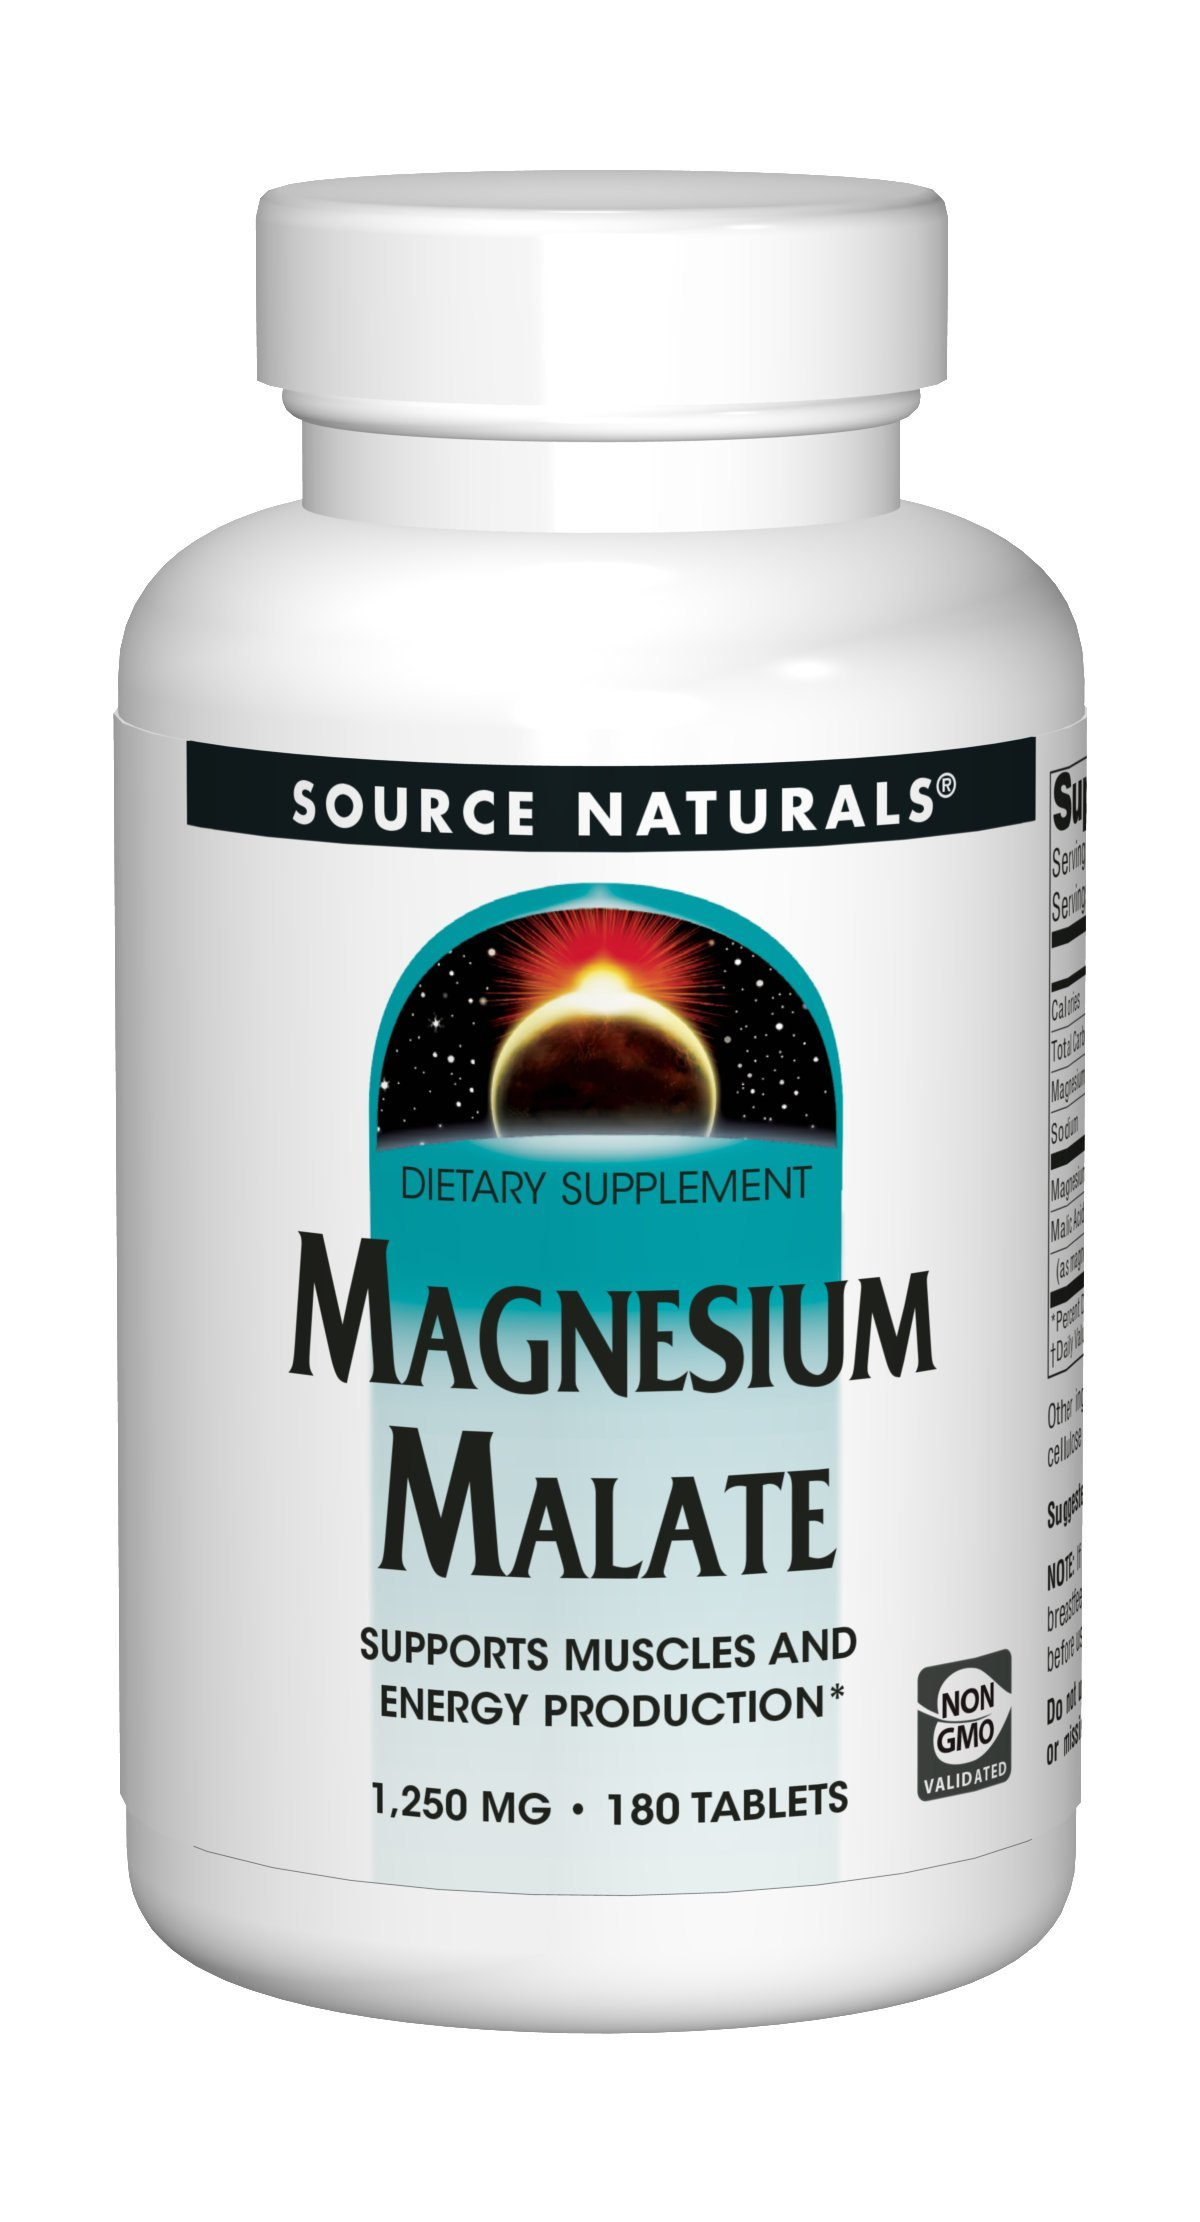 Source Naturals Magnesium Malate 1250mg Supplement Supports Muscle Function, Health and Energy Production - Essential